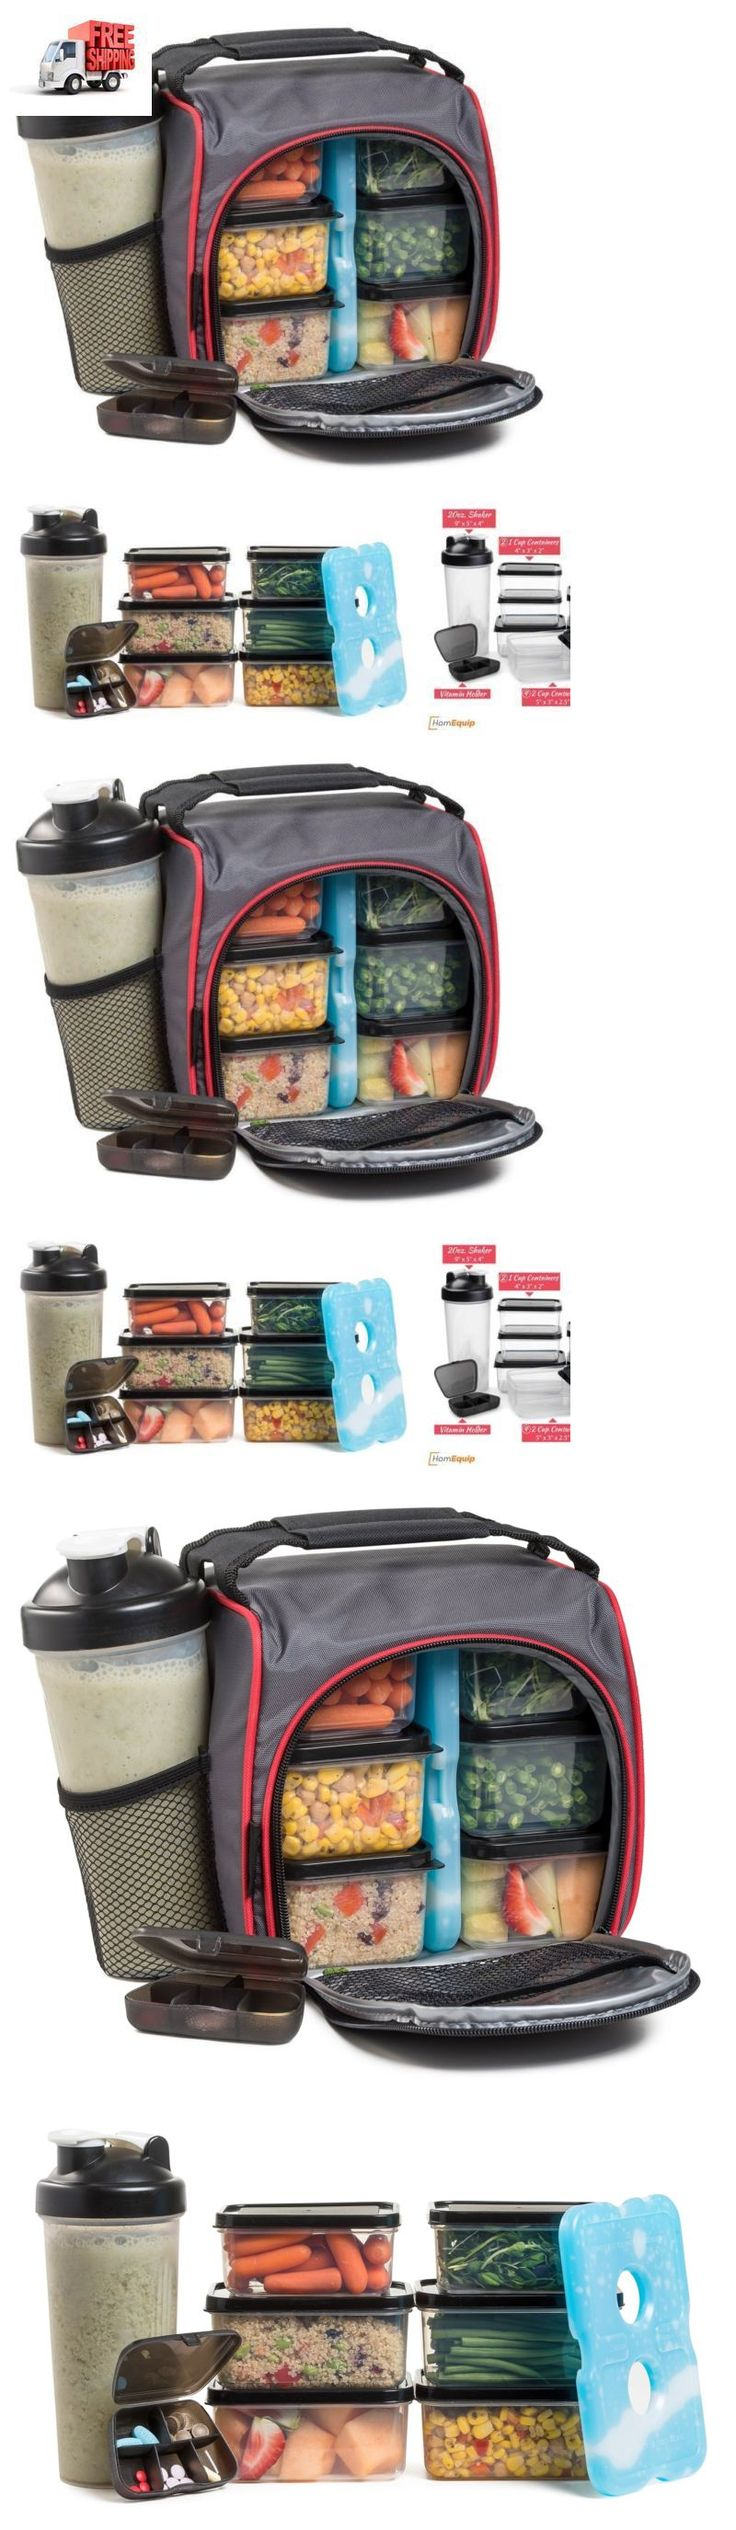 Food Storage Containers 20655: Meal Prep Travel Bag W Bonus Food Containers Organized Storage Lunch Box Cooler -> BUY IT NOW ONLY: $35.59 on eBay!